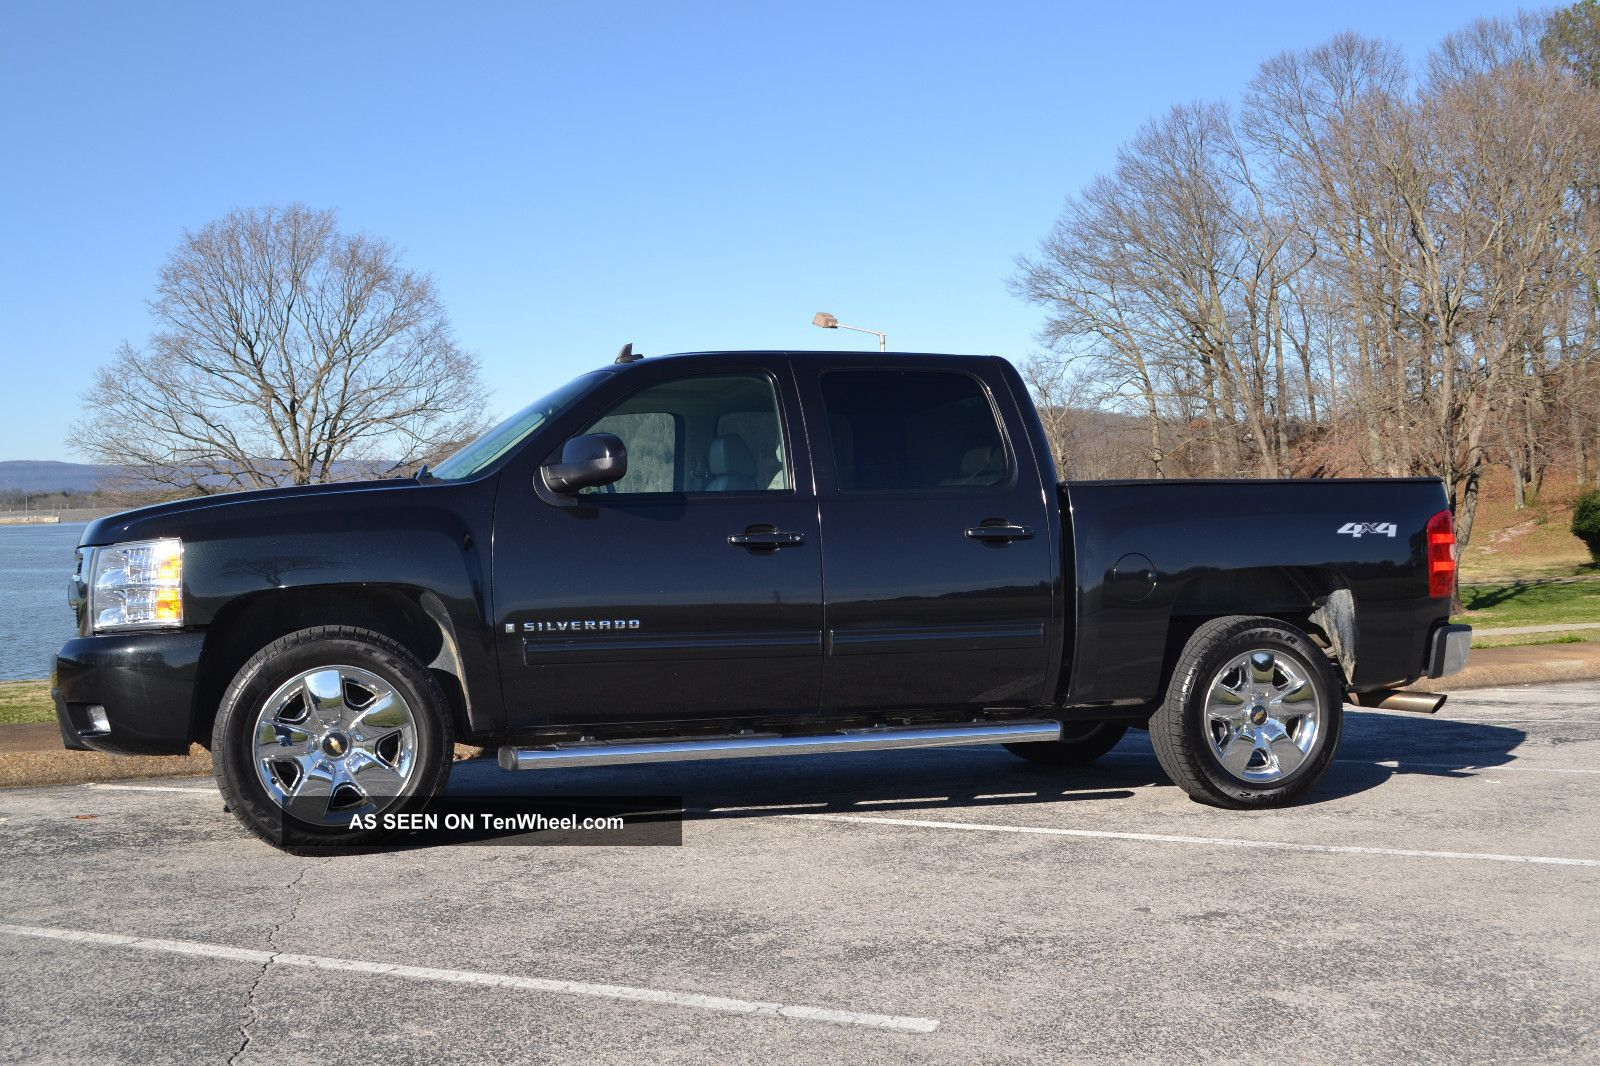 2009 chevrolet silverado 1500 ltz crew cab pickup 4 door 5 3l black 4x4. Black Bedroom Furniture Sets. Home Design Ideas